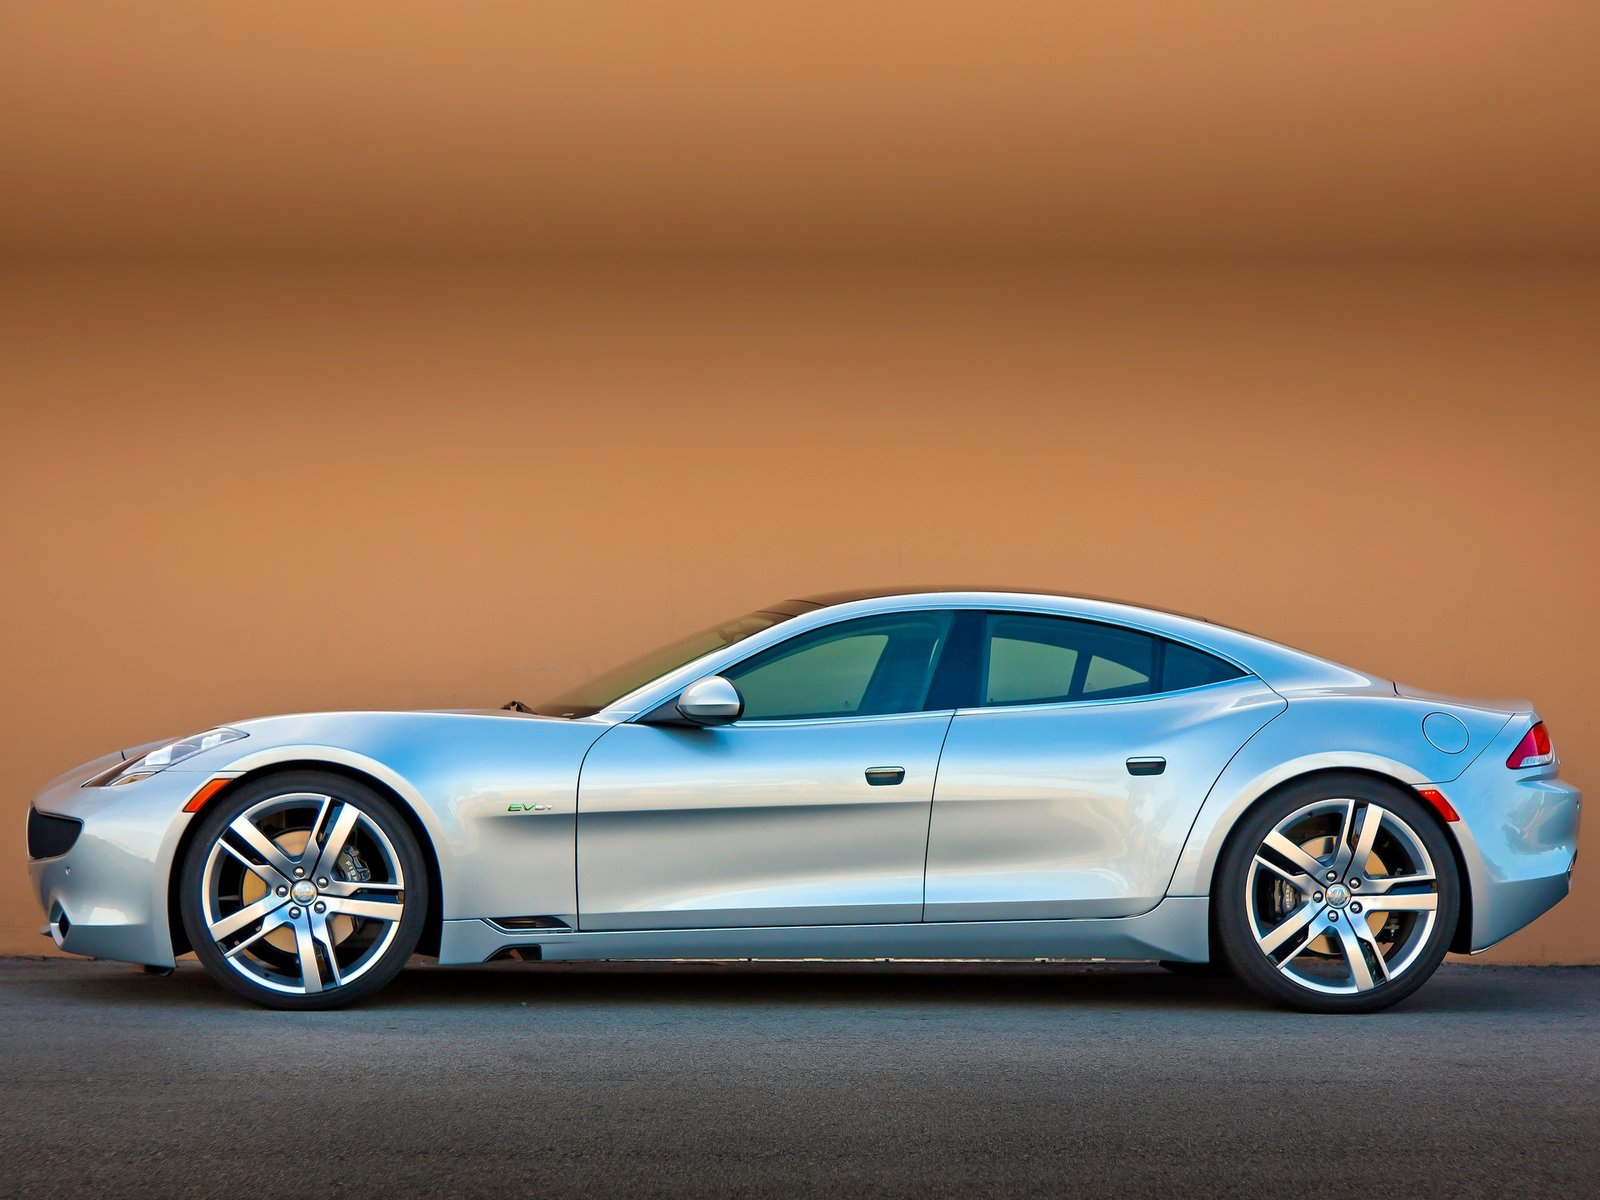 car news car pictures 2012 fisker karma. Black Bedroom Furniture Sets. Home Design Ideas